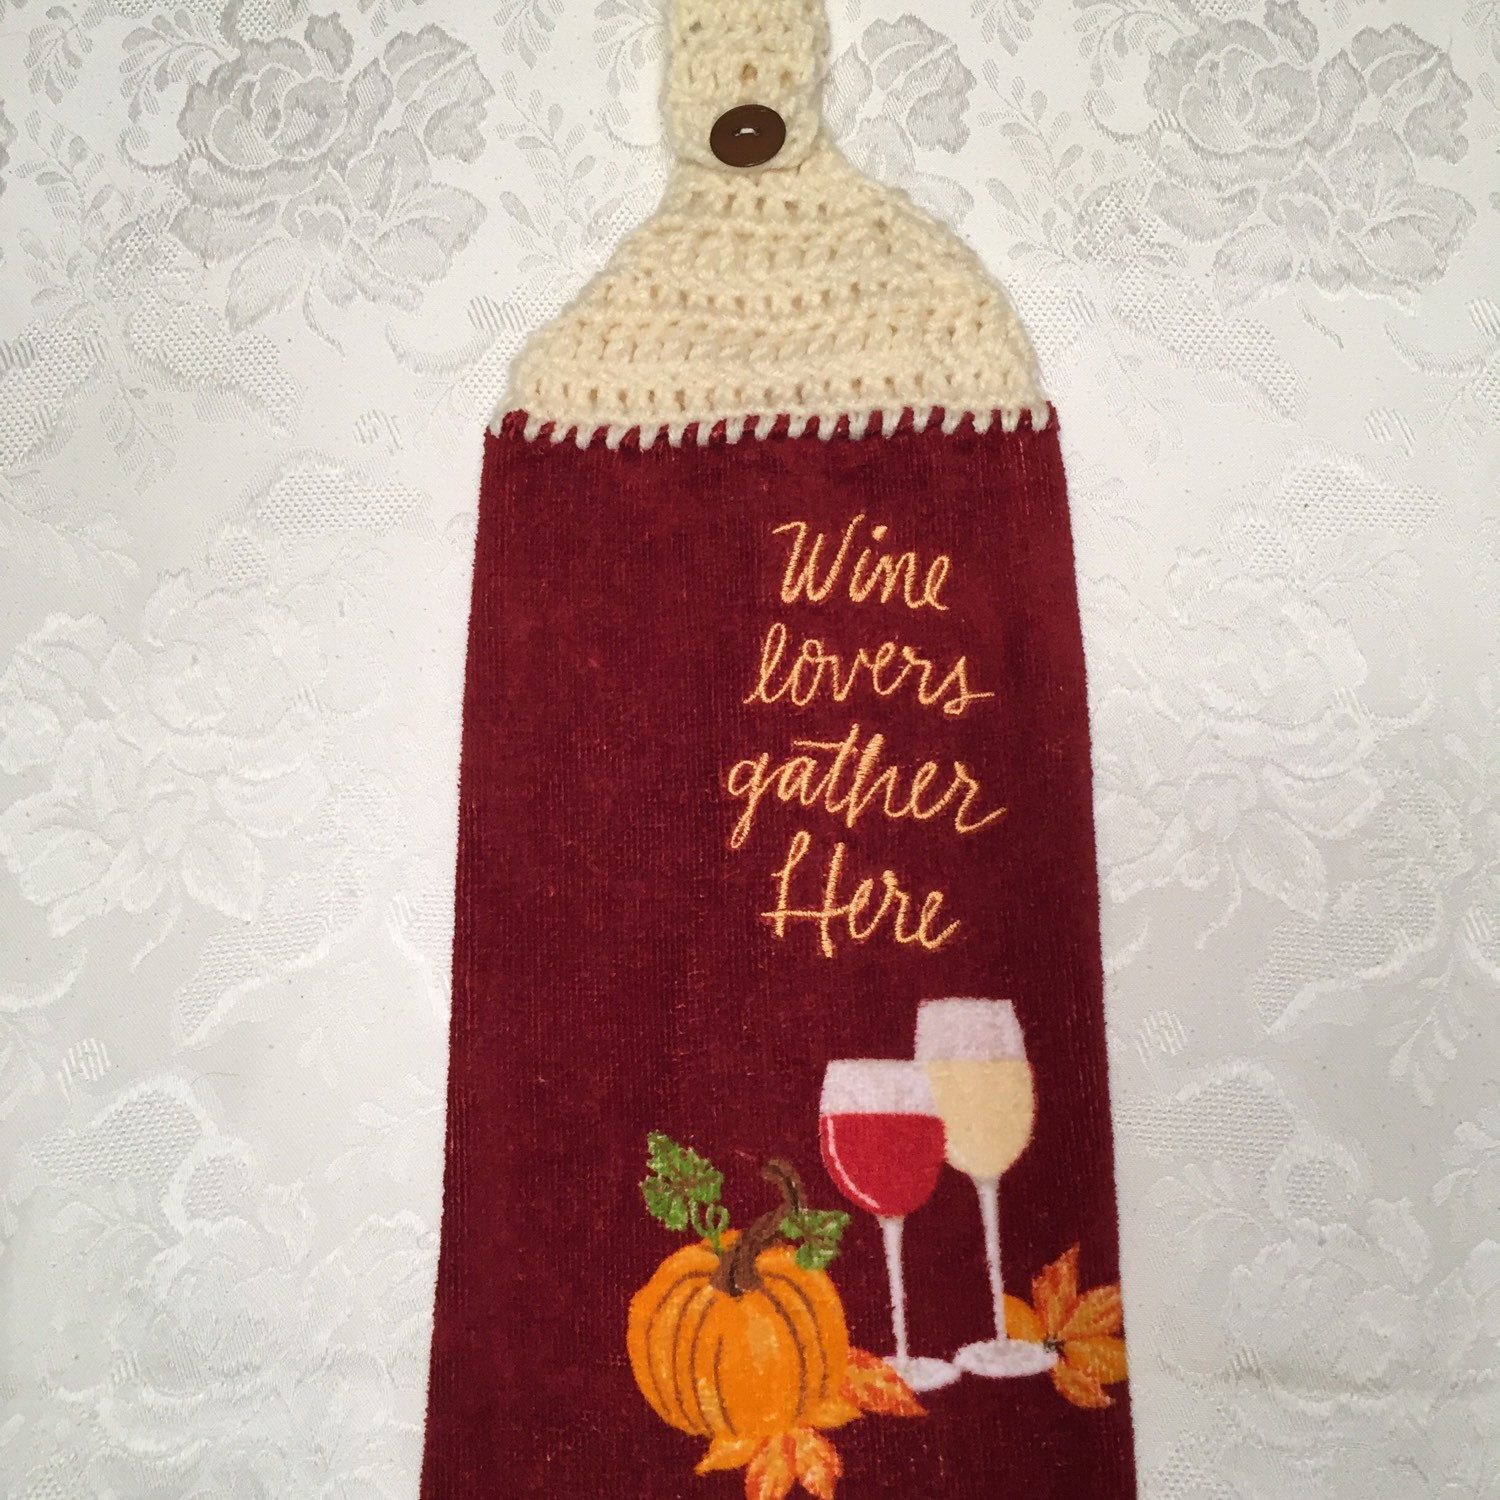 New Listing Crocheted Top Dish Towel Wine Lovers Gather Here Wine Lovers Dish Towels Etsy Handmade